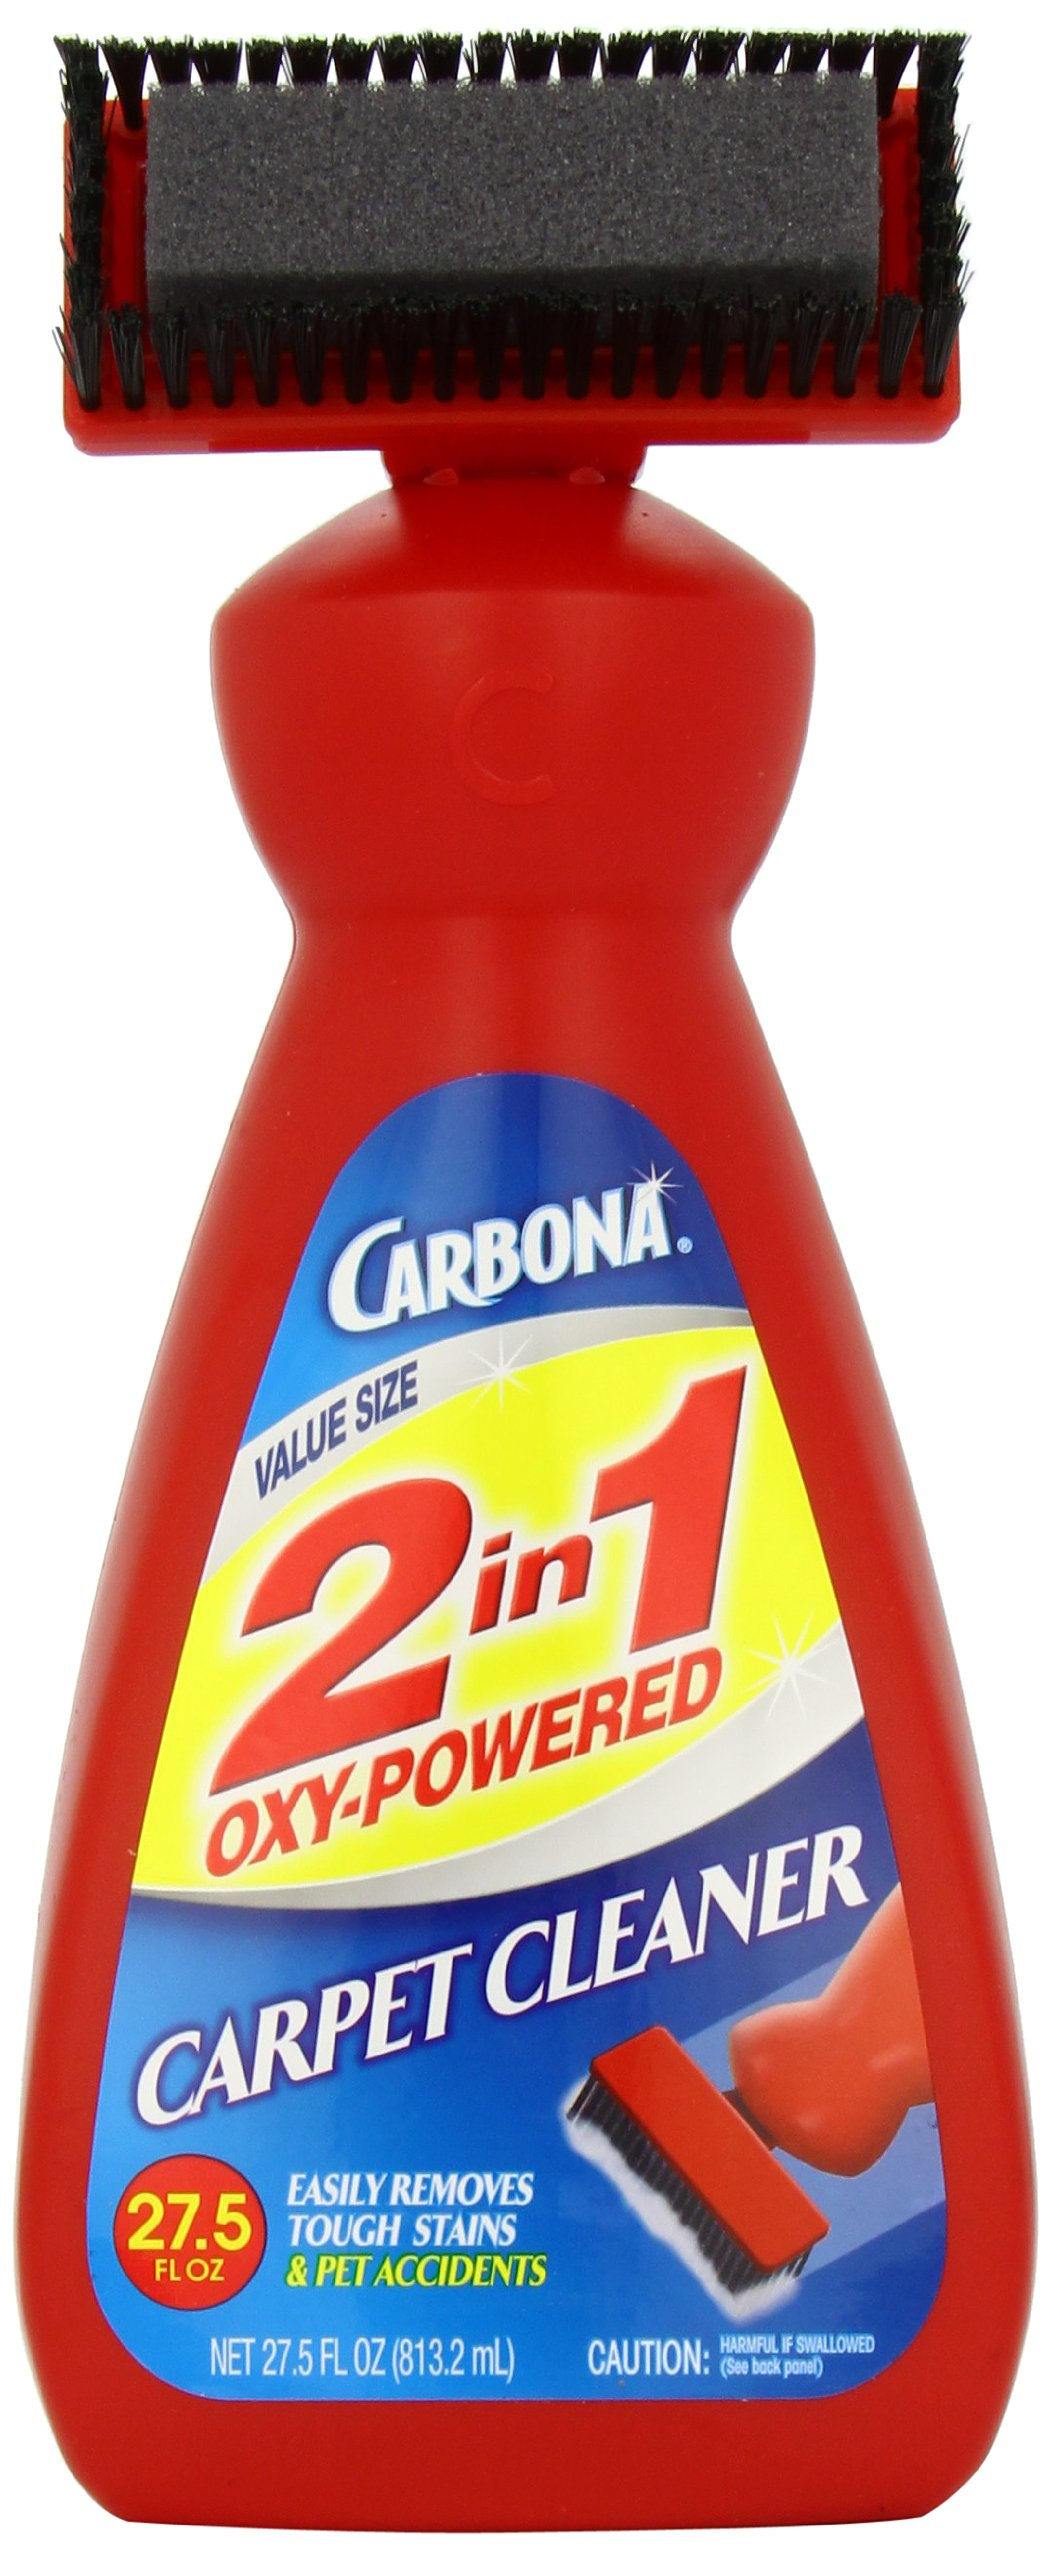 Carbona 2 in 1 Oxy-Powered Carpet Cleaner, 27.5-Ounce Bottle (Pack of 9)